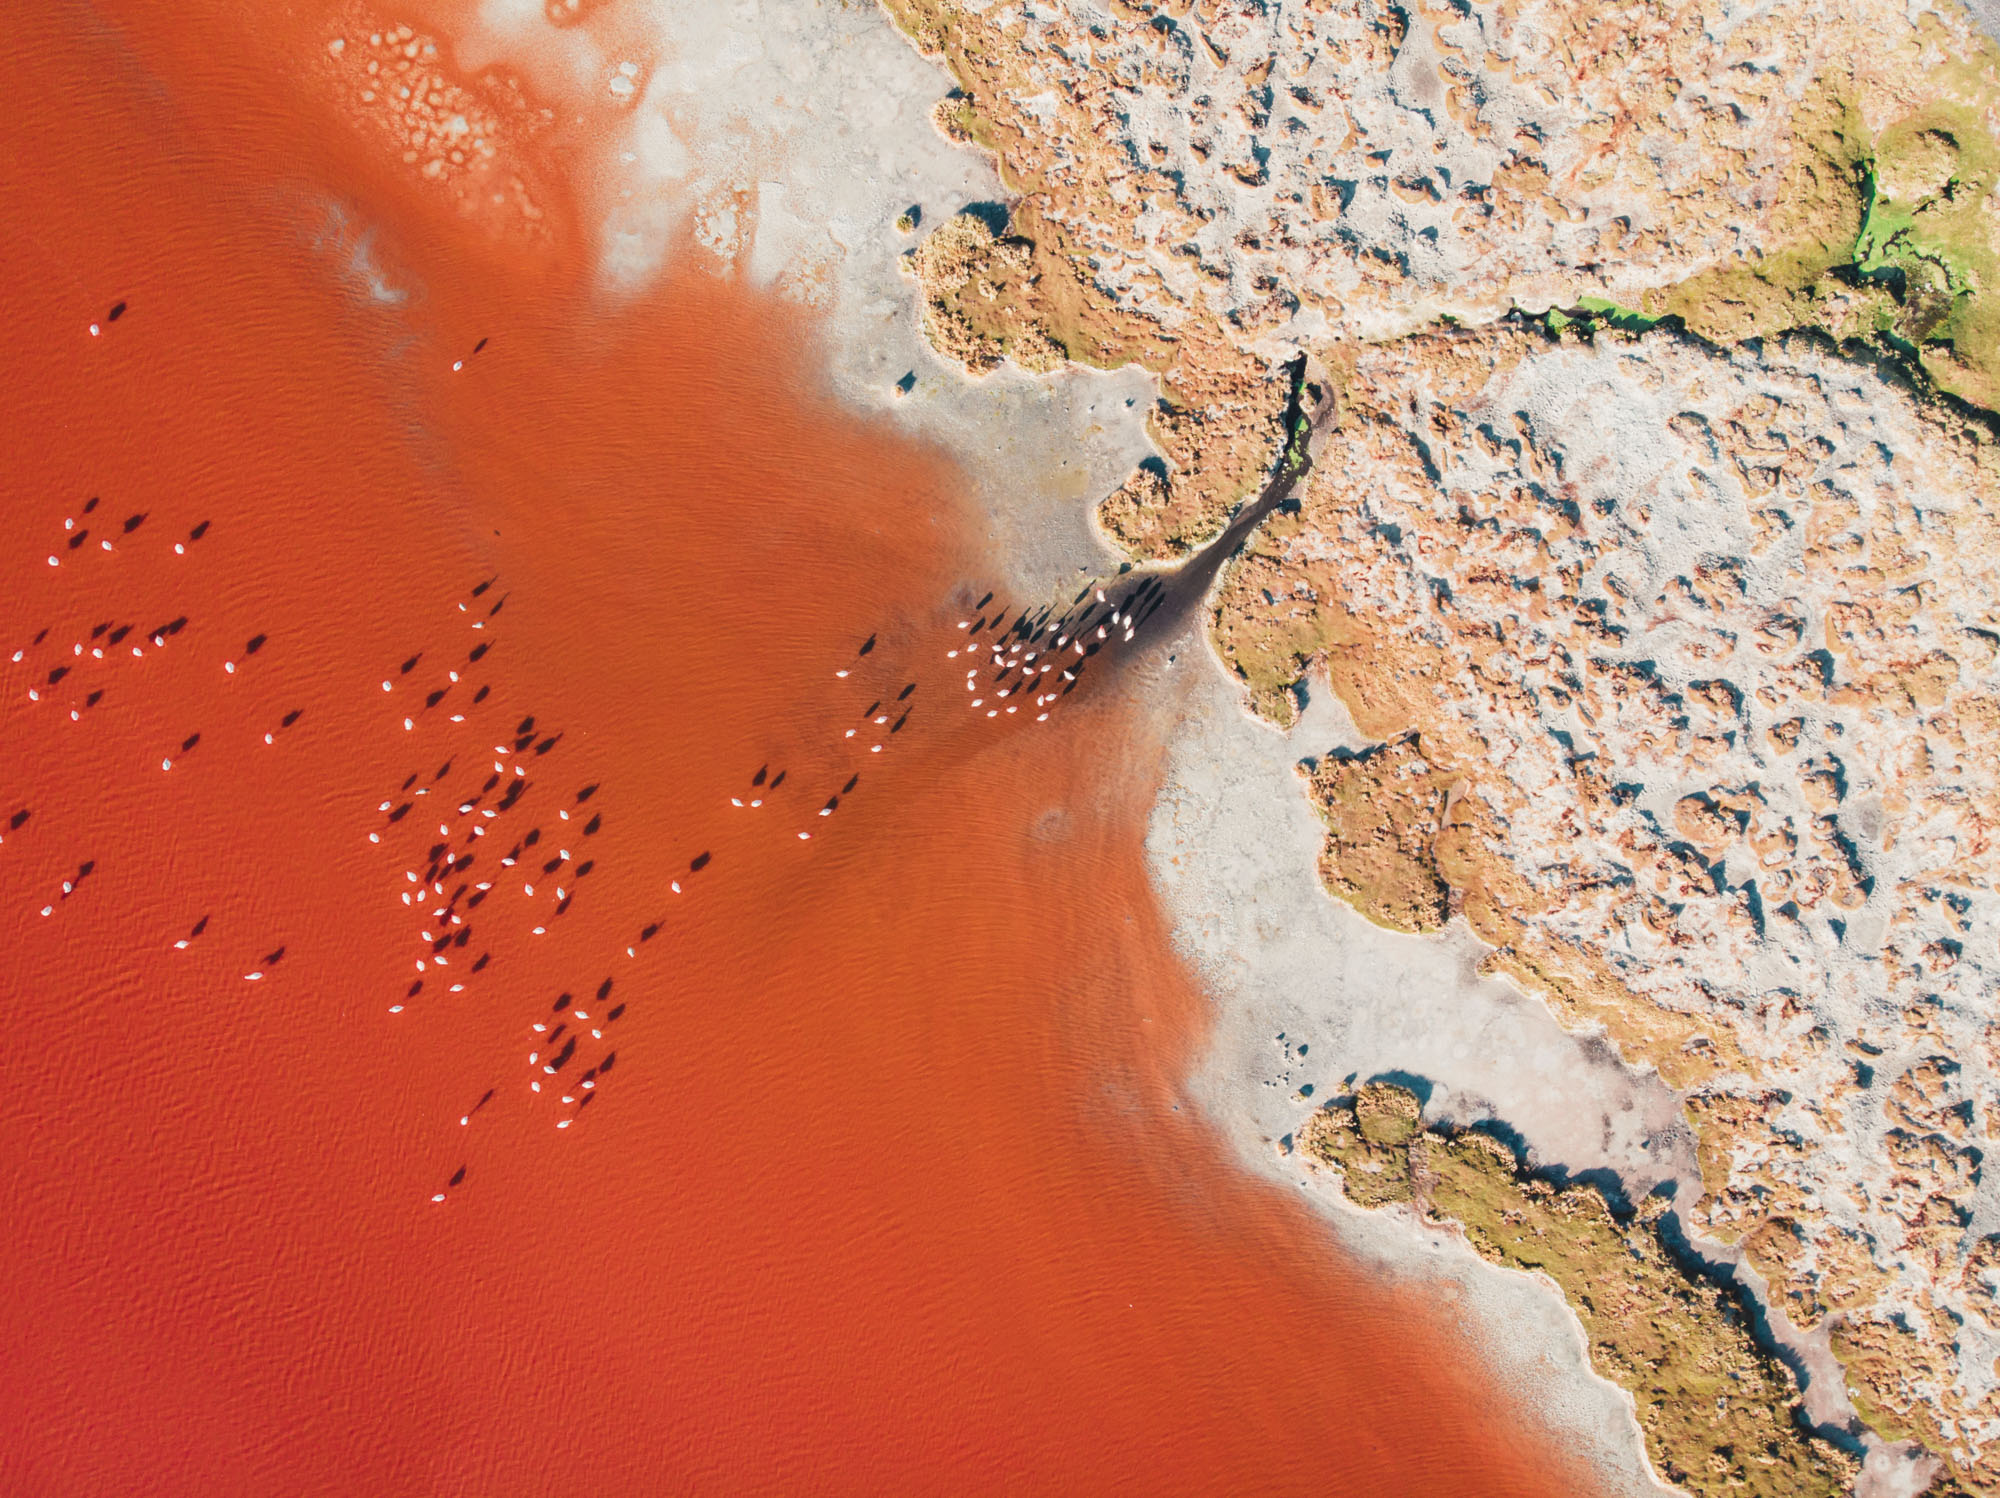 The red colour is caused by red sediments and pigmentation of some algea.